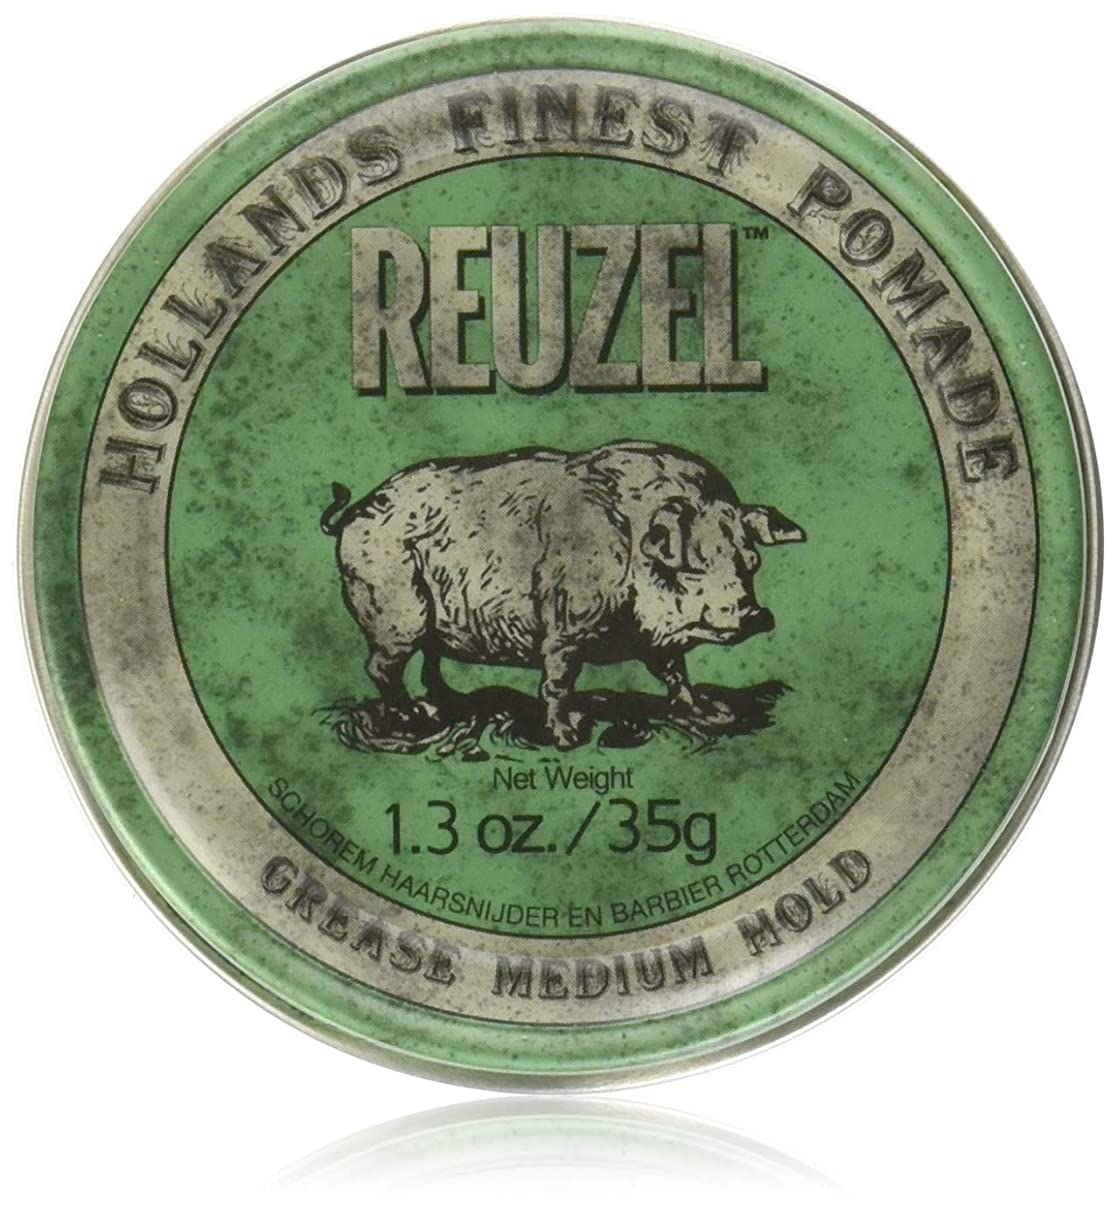 打たれたトラックギャザー敵意REUZEL Grease Hold Hair Styling Pomade Piglet Wax/Gel, Medium, Green, 1.3 oz, 35g by REUZEL